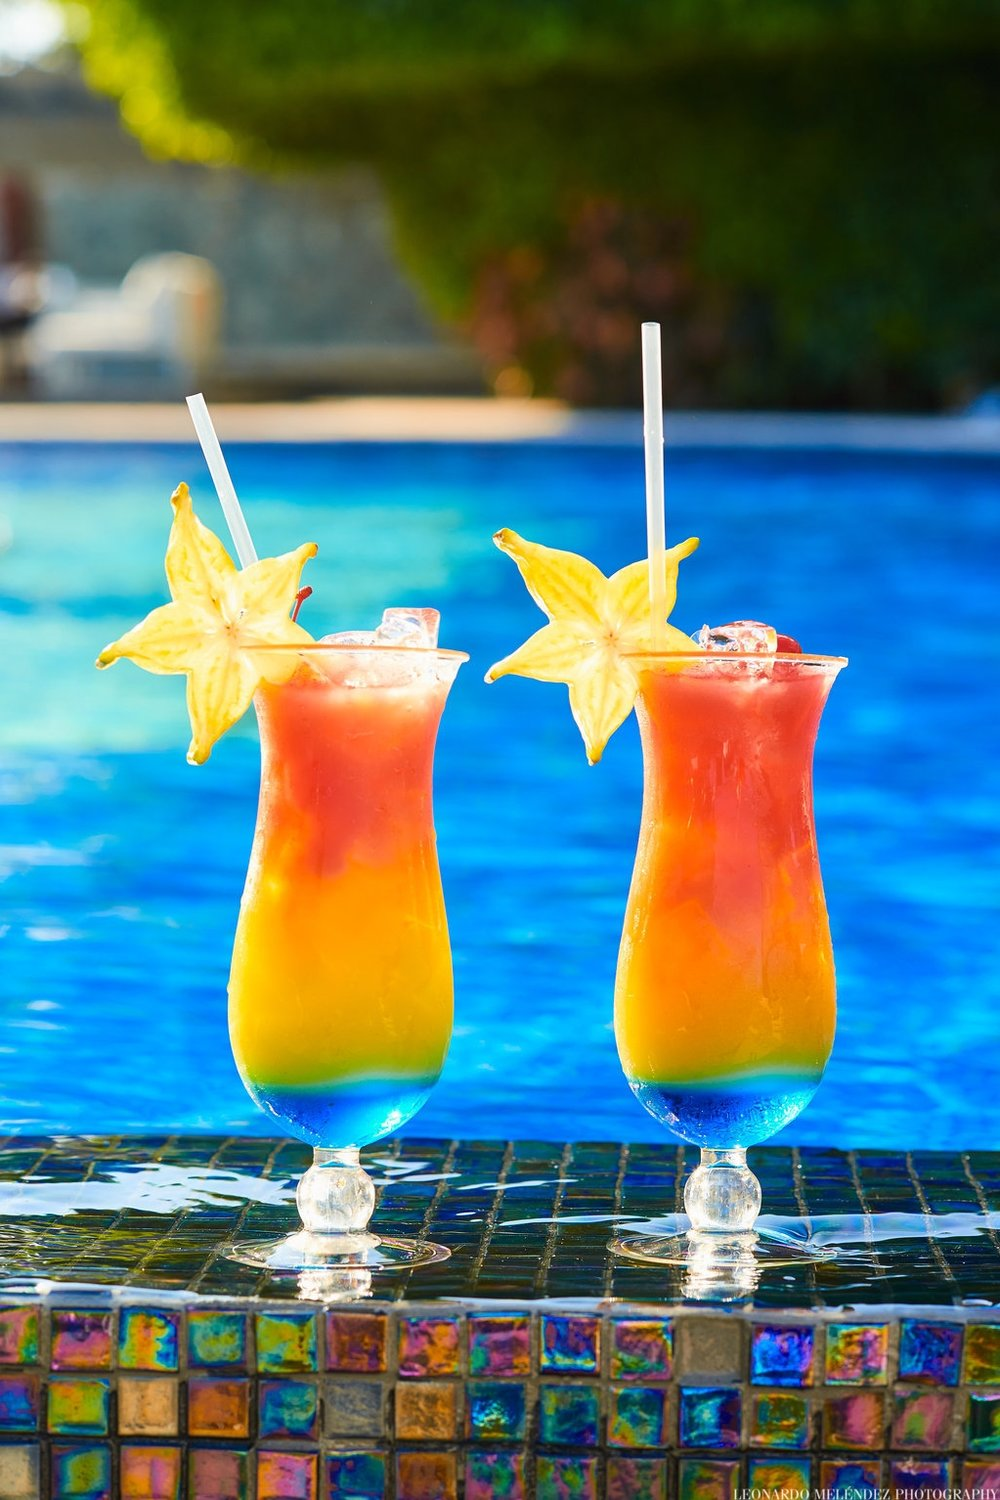 Welcome drink - There's nothing like walking up to your resort and immediately being handed a refreshing cocktail - completely free of charge. We want your vacation to get started right. Don't worry, we offer virgin cocktails too!